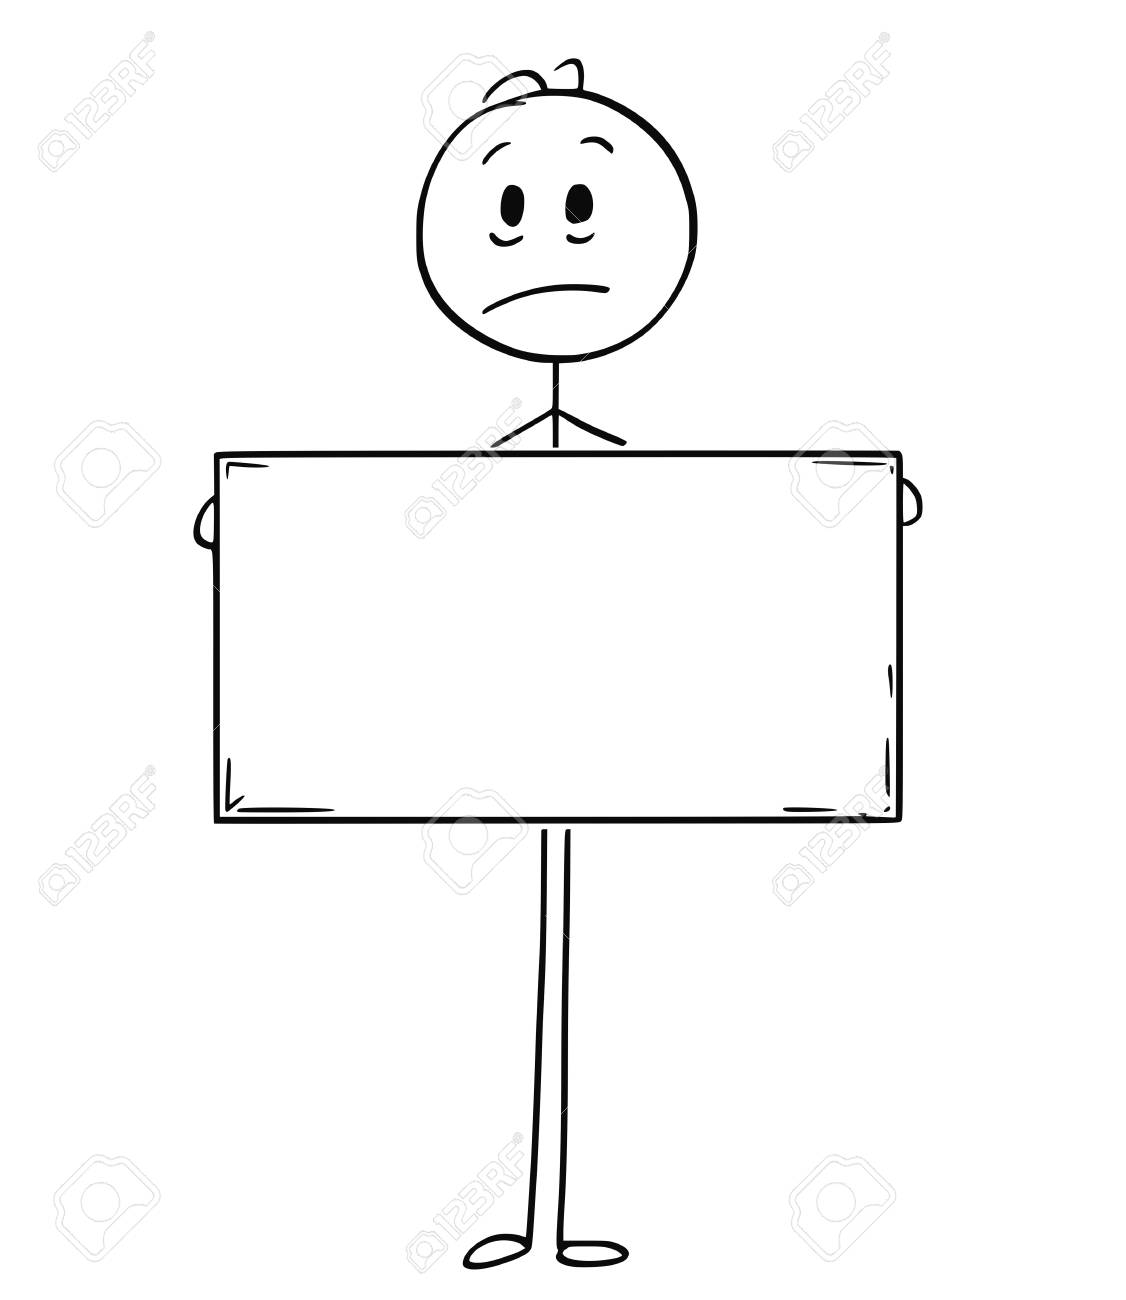 Cartoon stick man drawing conceptual illustration of sad man or businessman holding large empty or blank